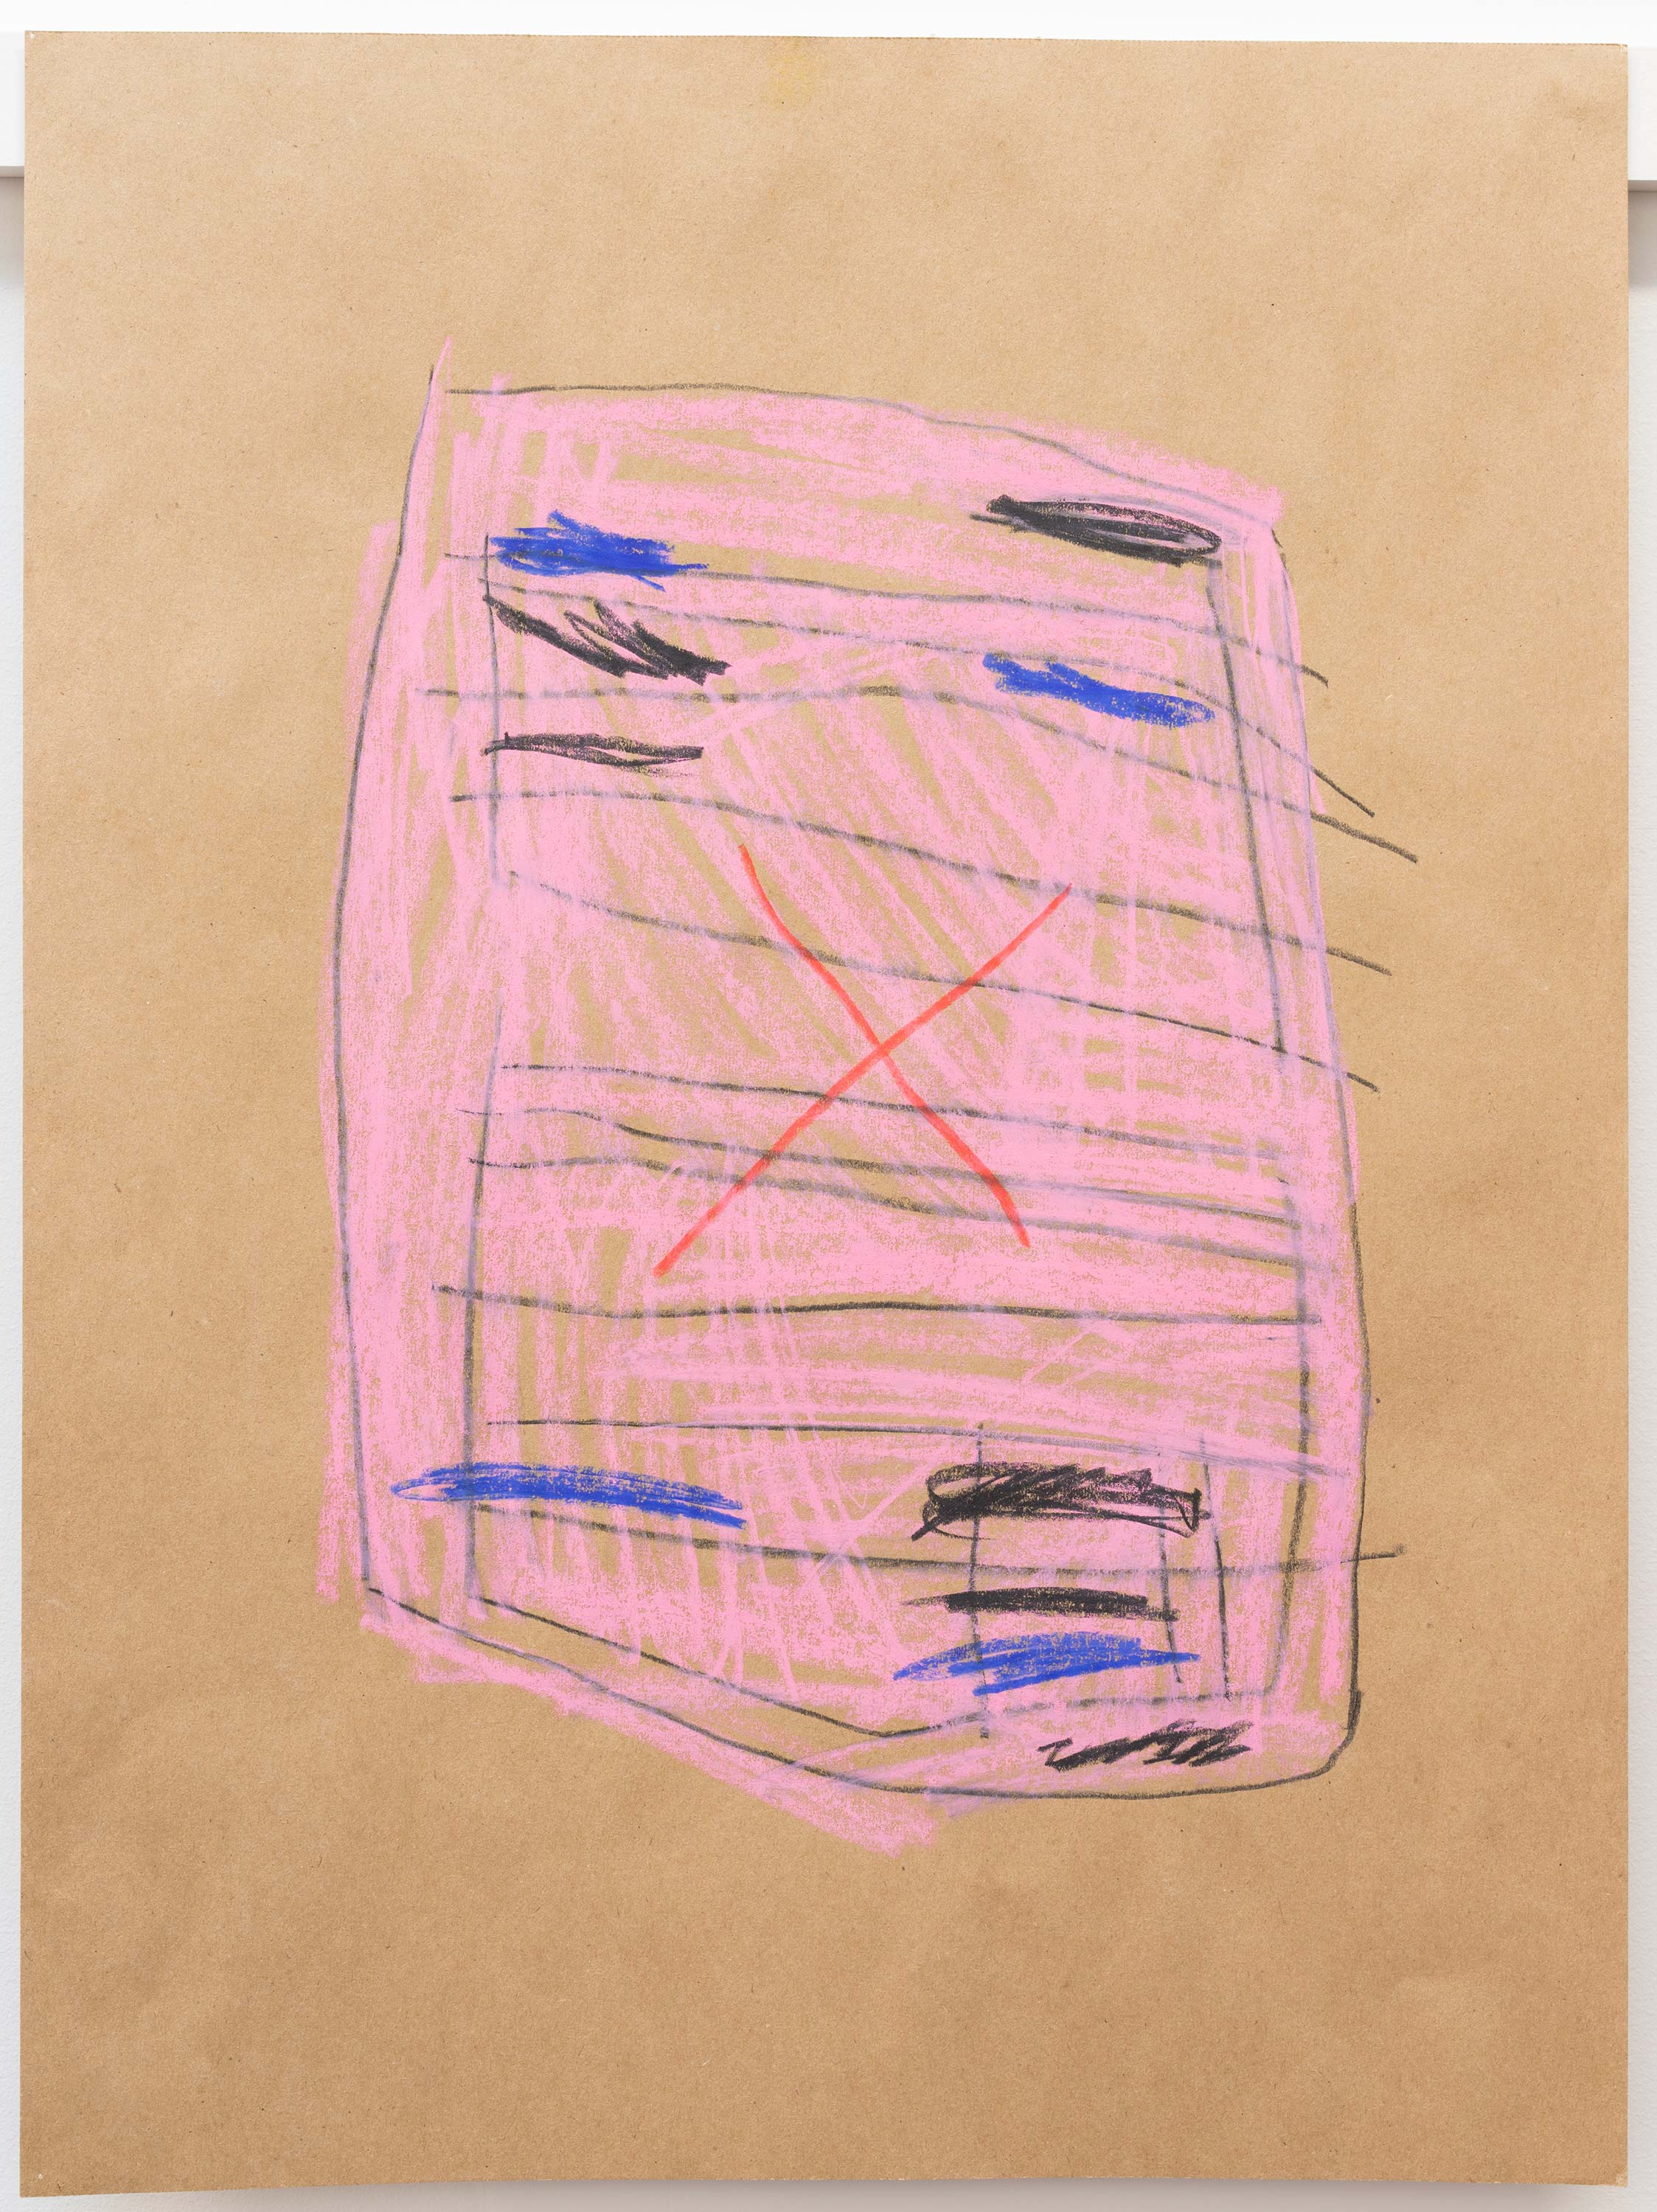 Al Freeman<br>Document pink 8<br>2015<br>Graphite and oil pastel on paper<br>18 x 24 inches (46 x 61 cm)